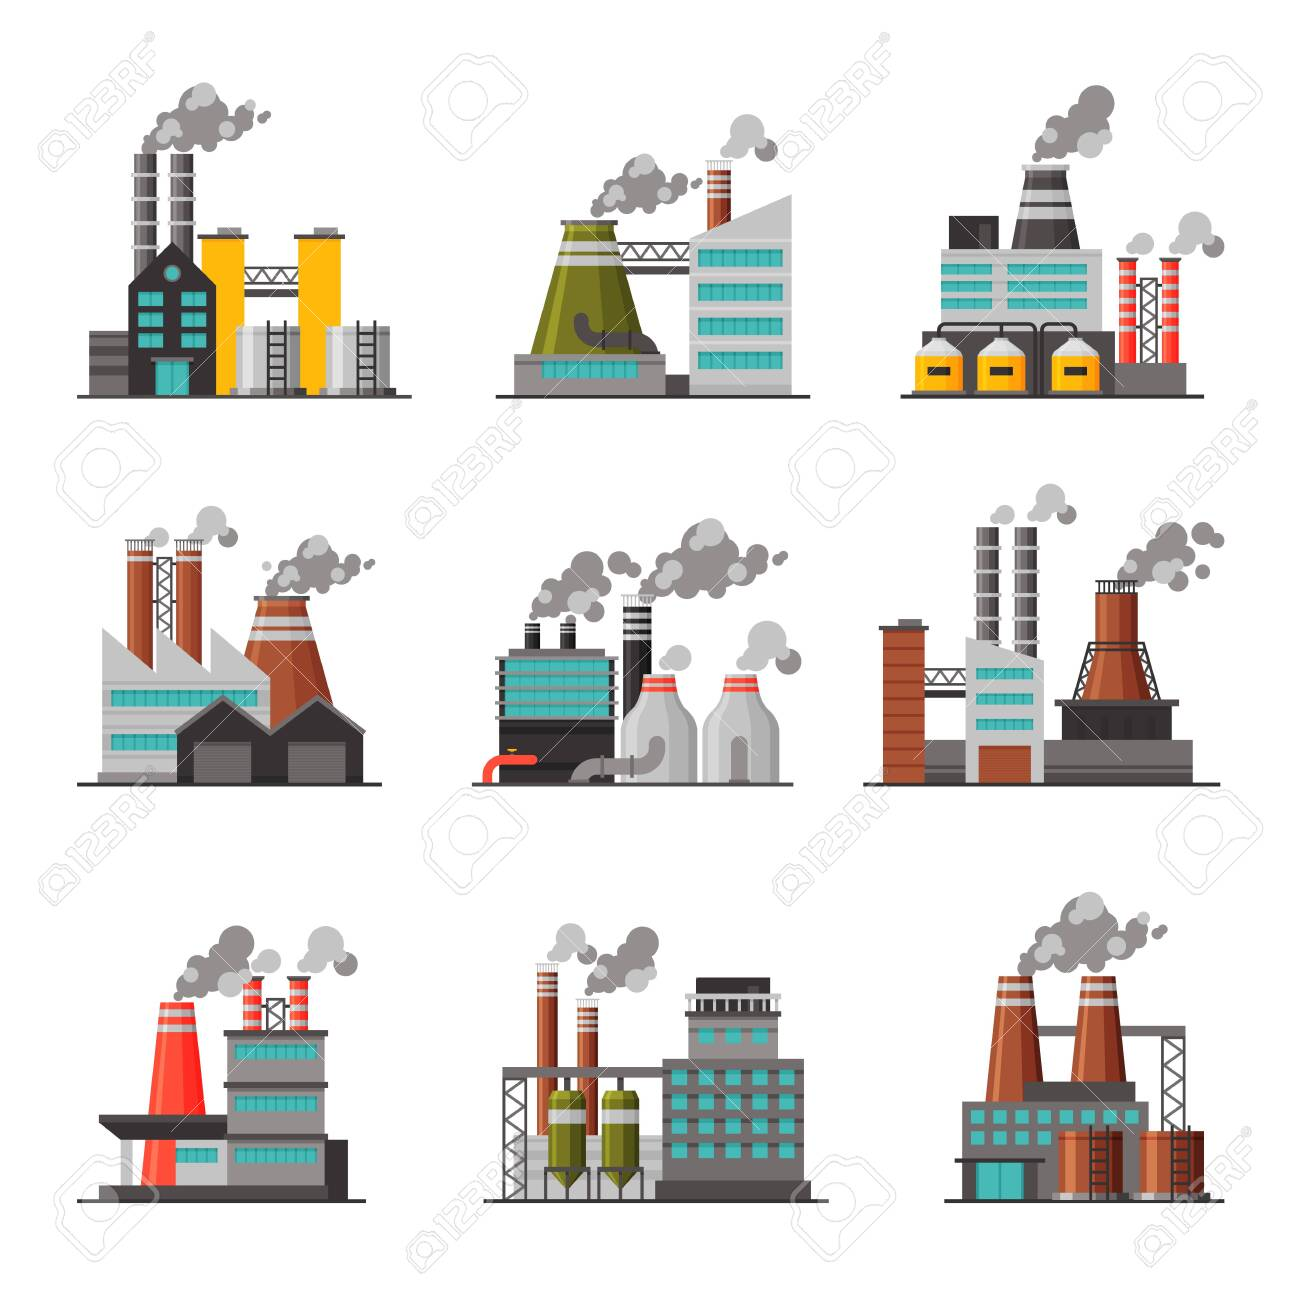 Power Plants Collection, Industrial Chemical or Refinery Factory Buildings with Smoking Chimneys Flat Vector Illustration on White Background. - 145908624